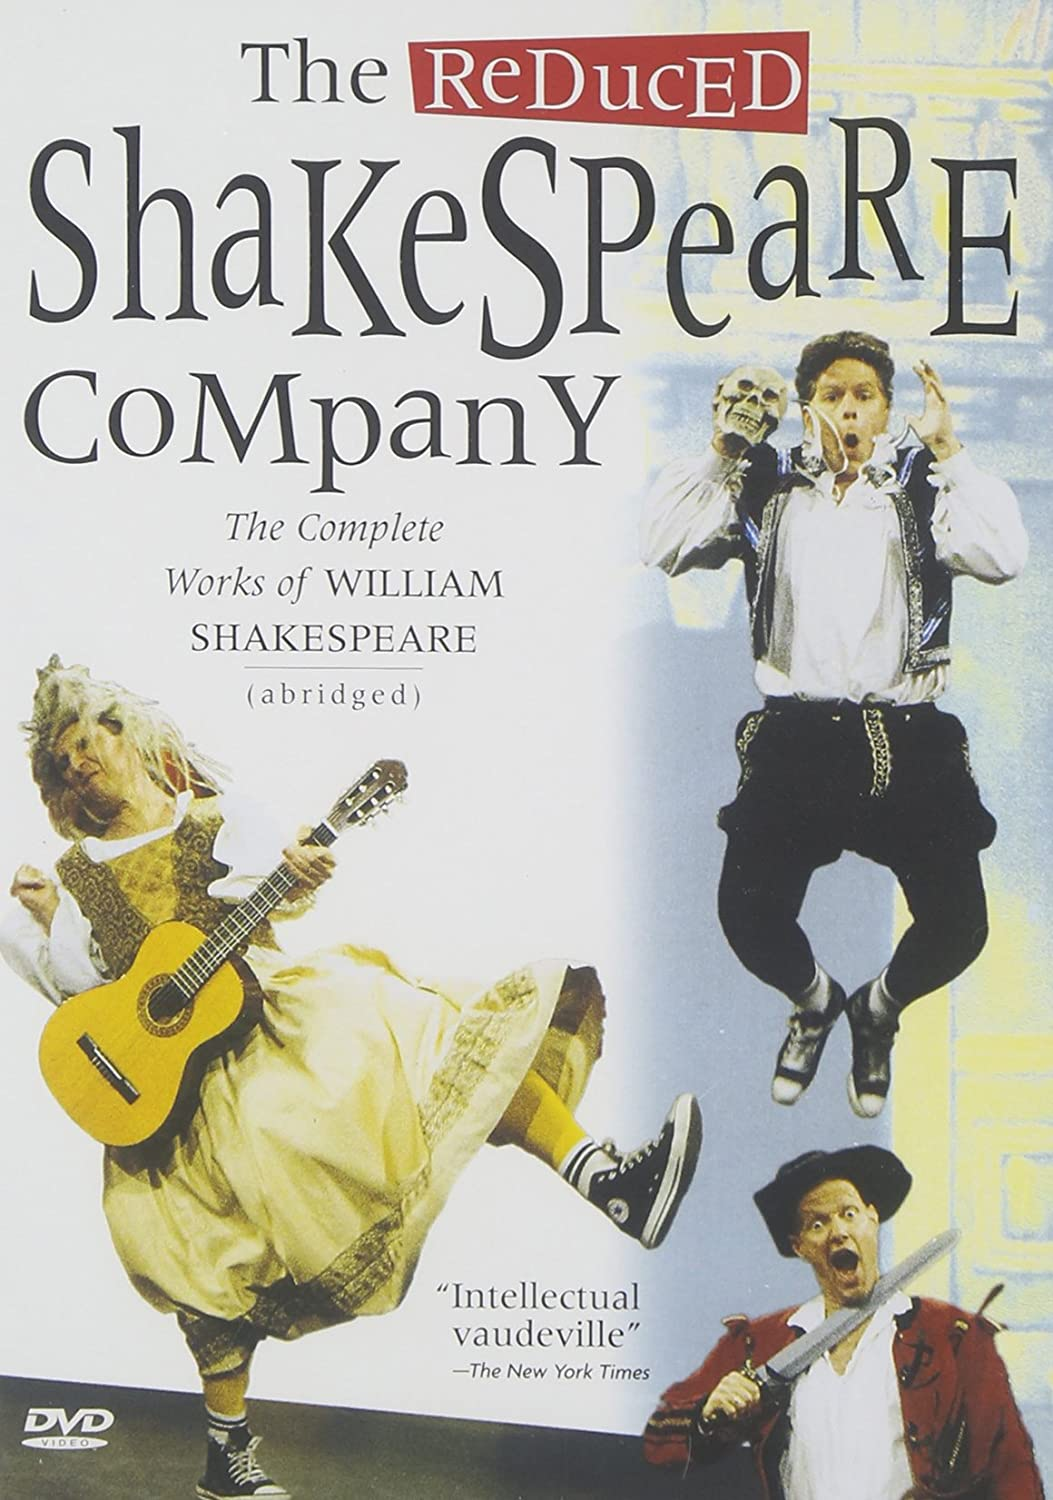 com the reduced shakespeare company the complete works com the reduced shakespeare company the complete works of william shakespeare abridged adam long reed martin austin tichenor daniel singer